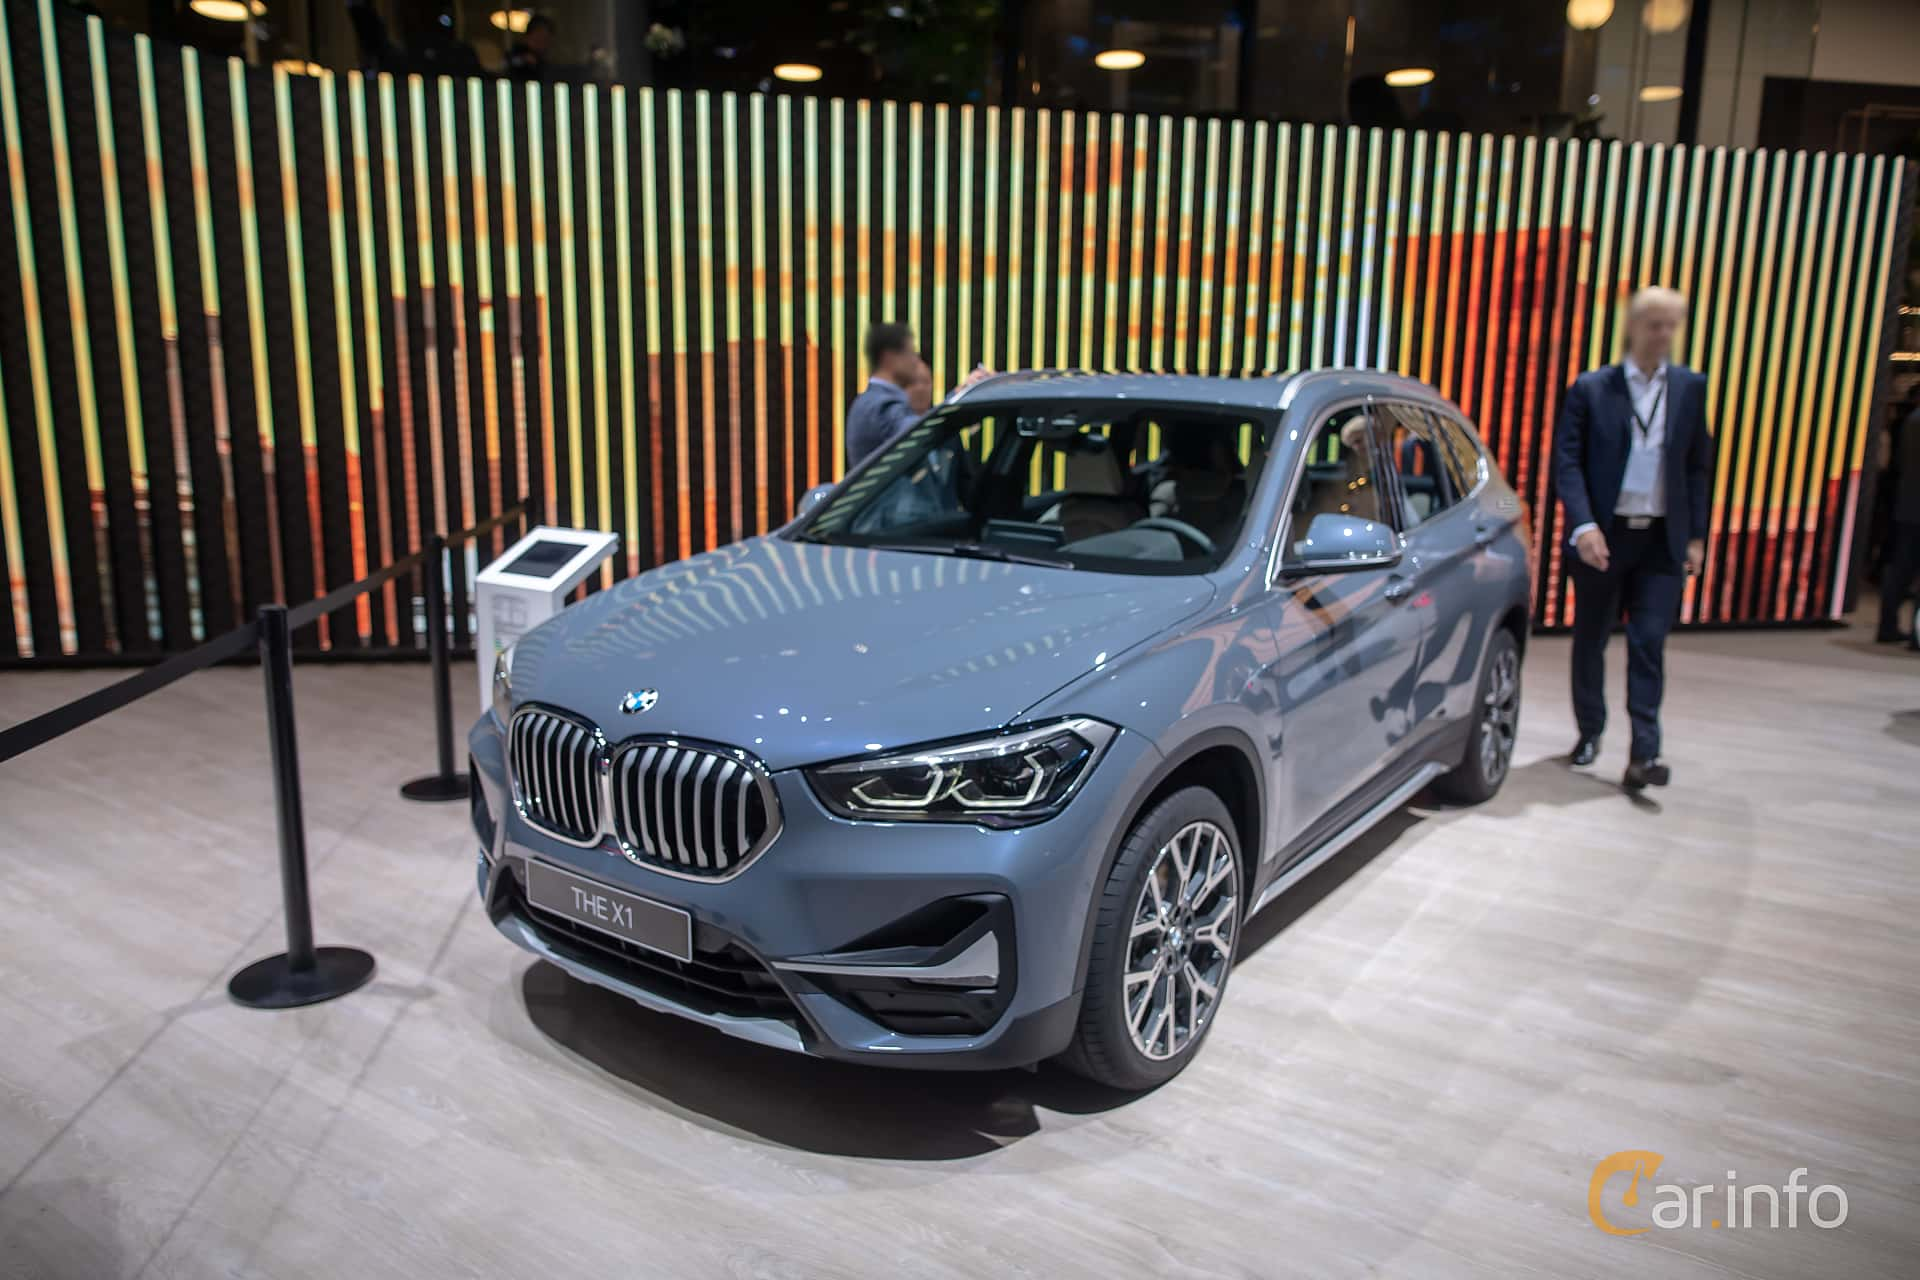 BMW X1 xDrive20d  Steptronic, 190hp, 2020 at IAA 2019